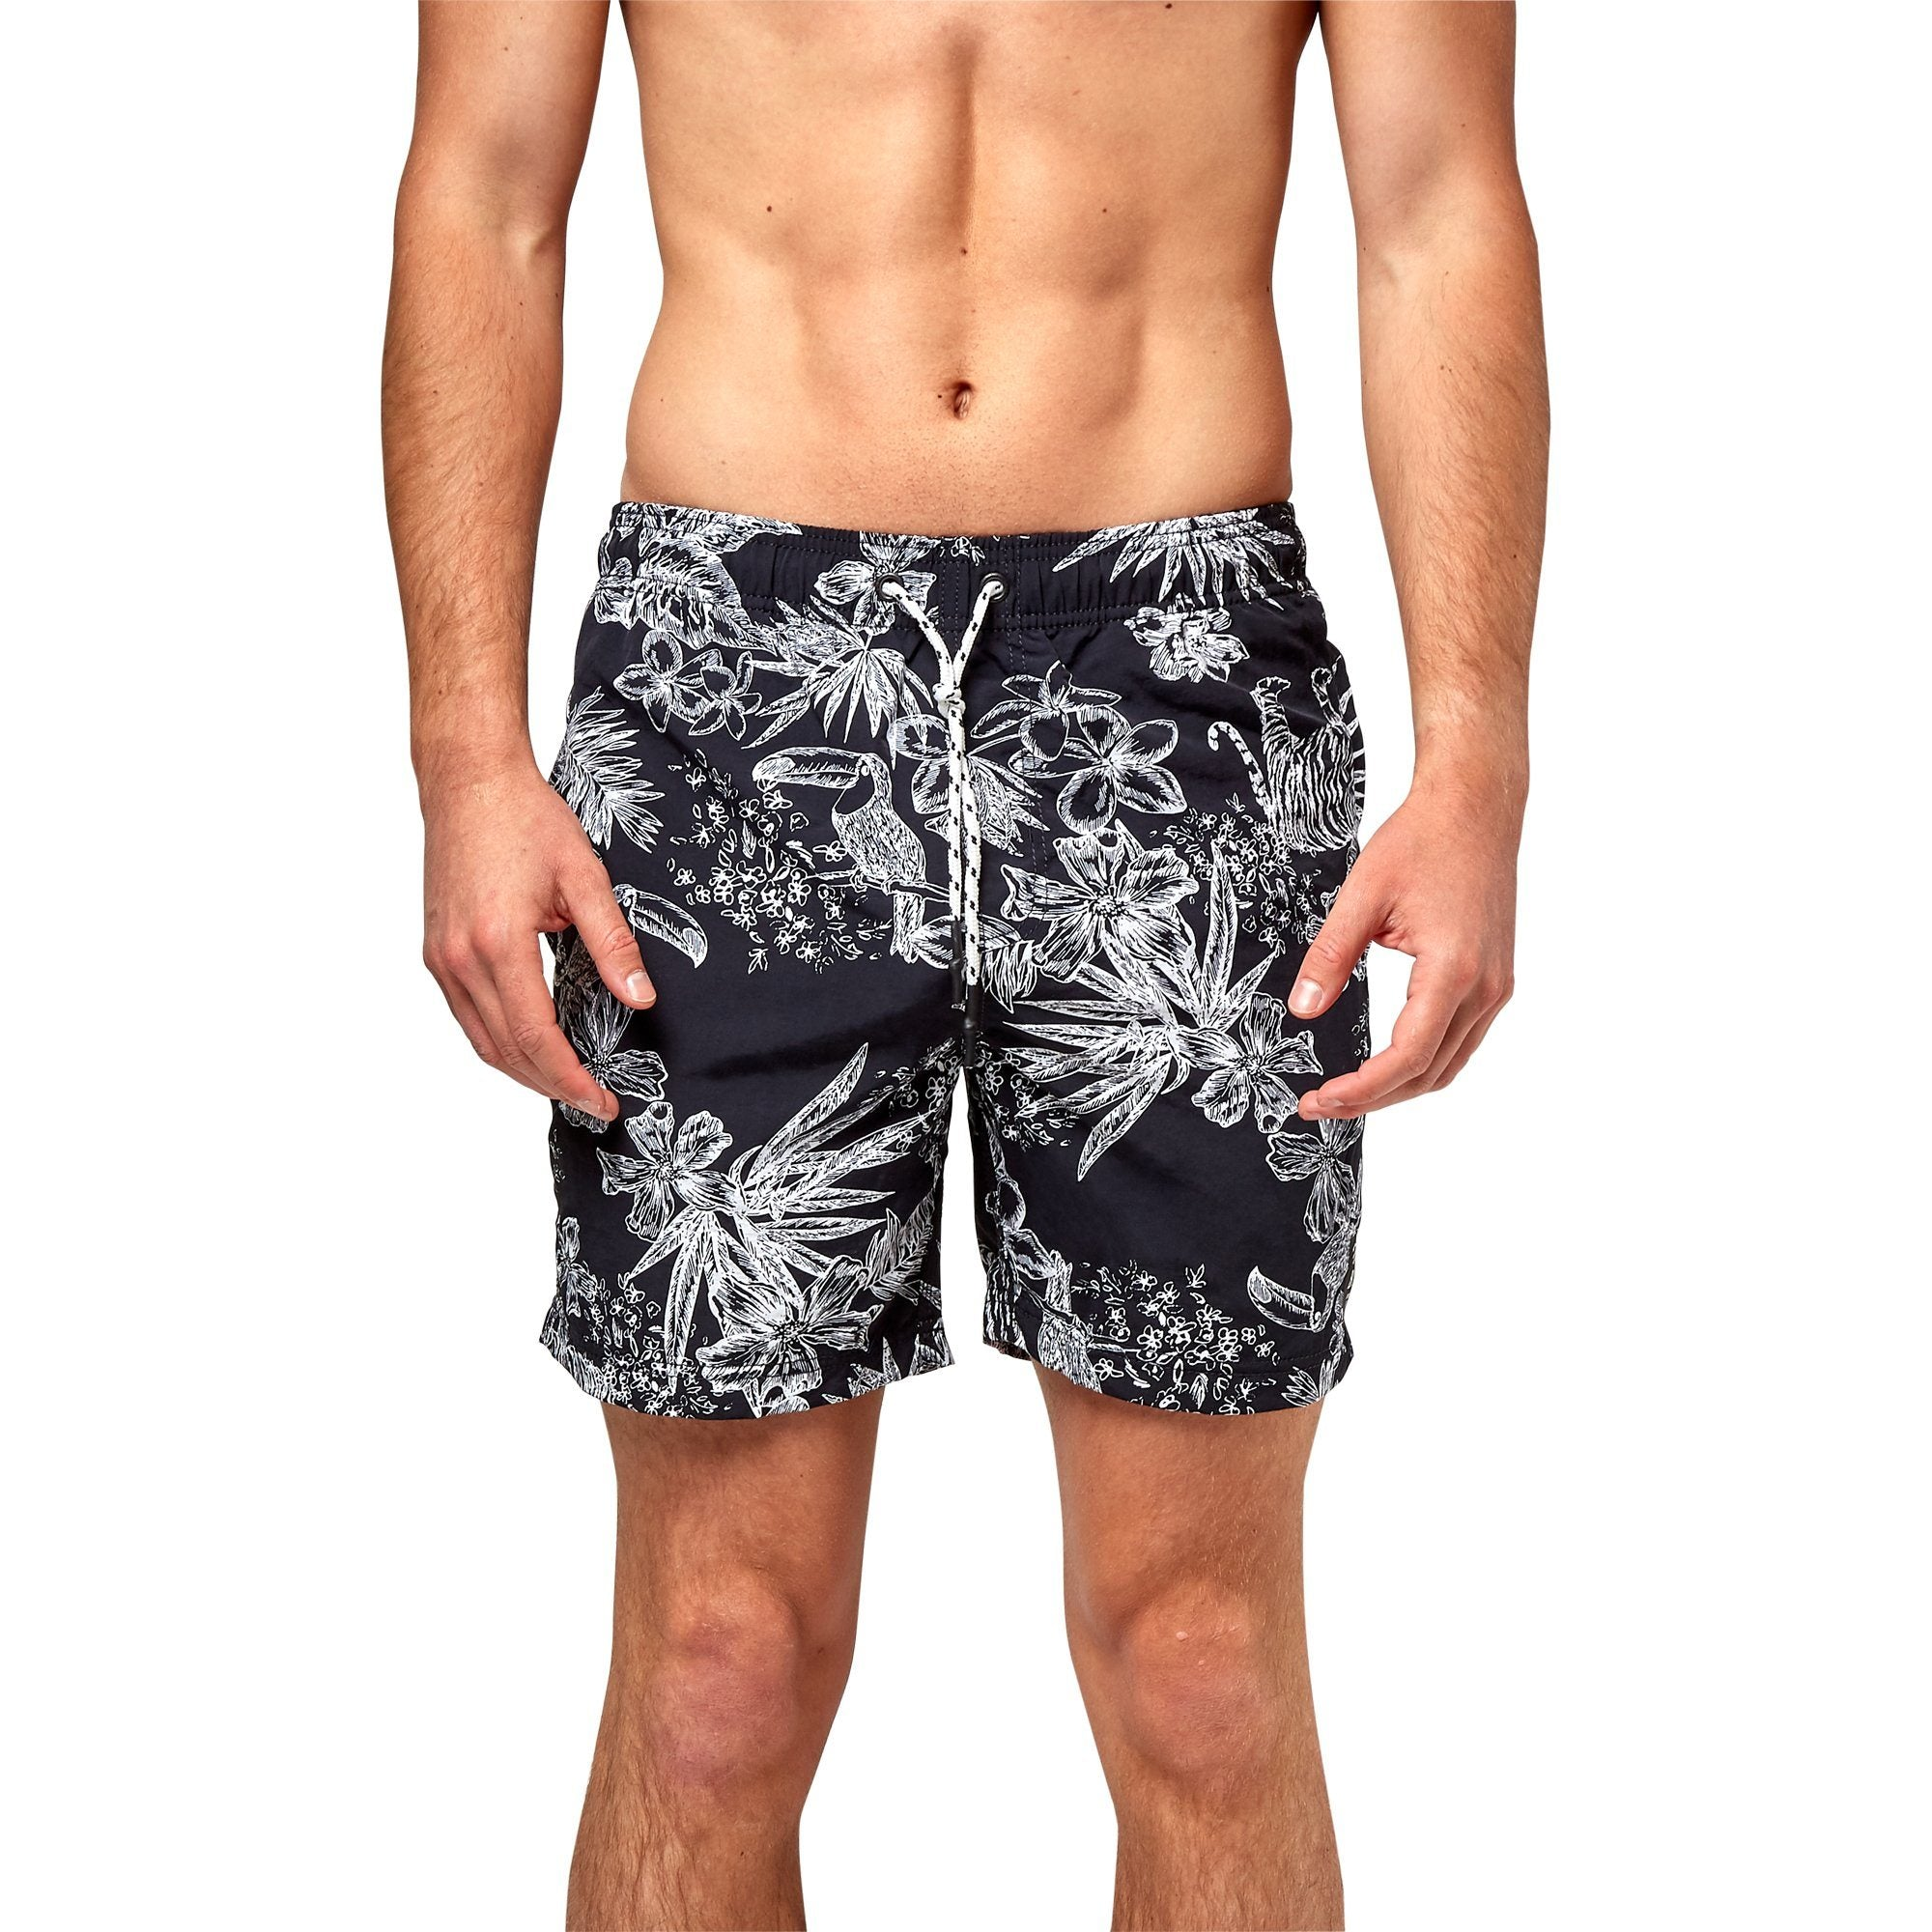 Bonds Men'S Swimwear Ydg Boardie - Print 35 Men's Swimwear Bonds